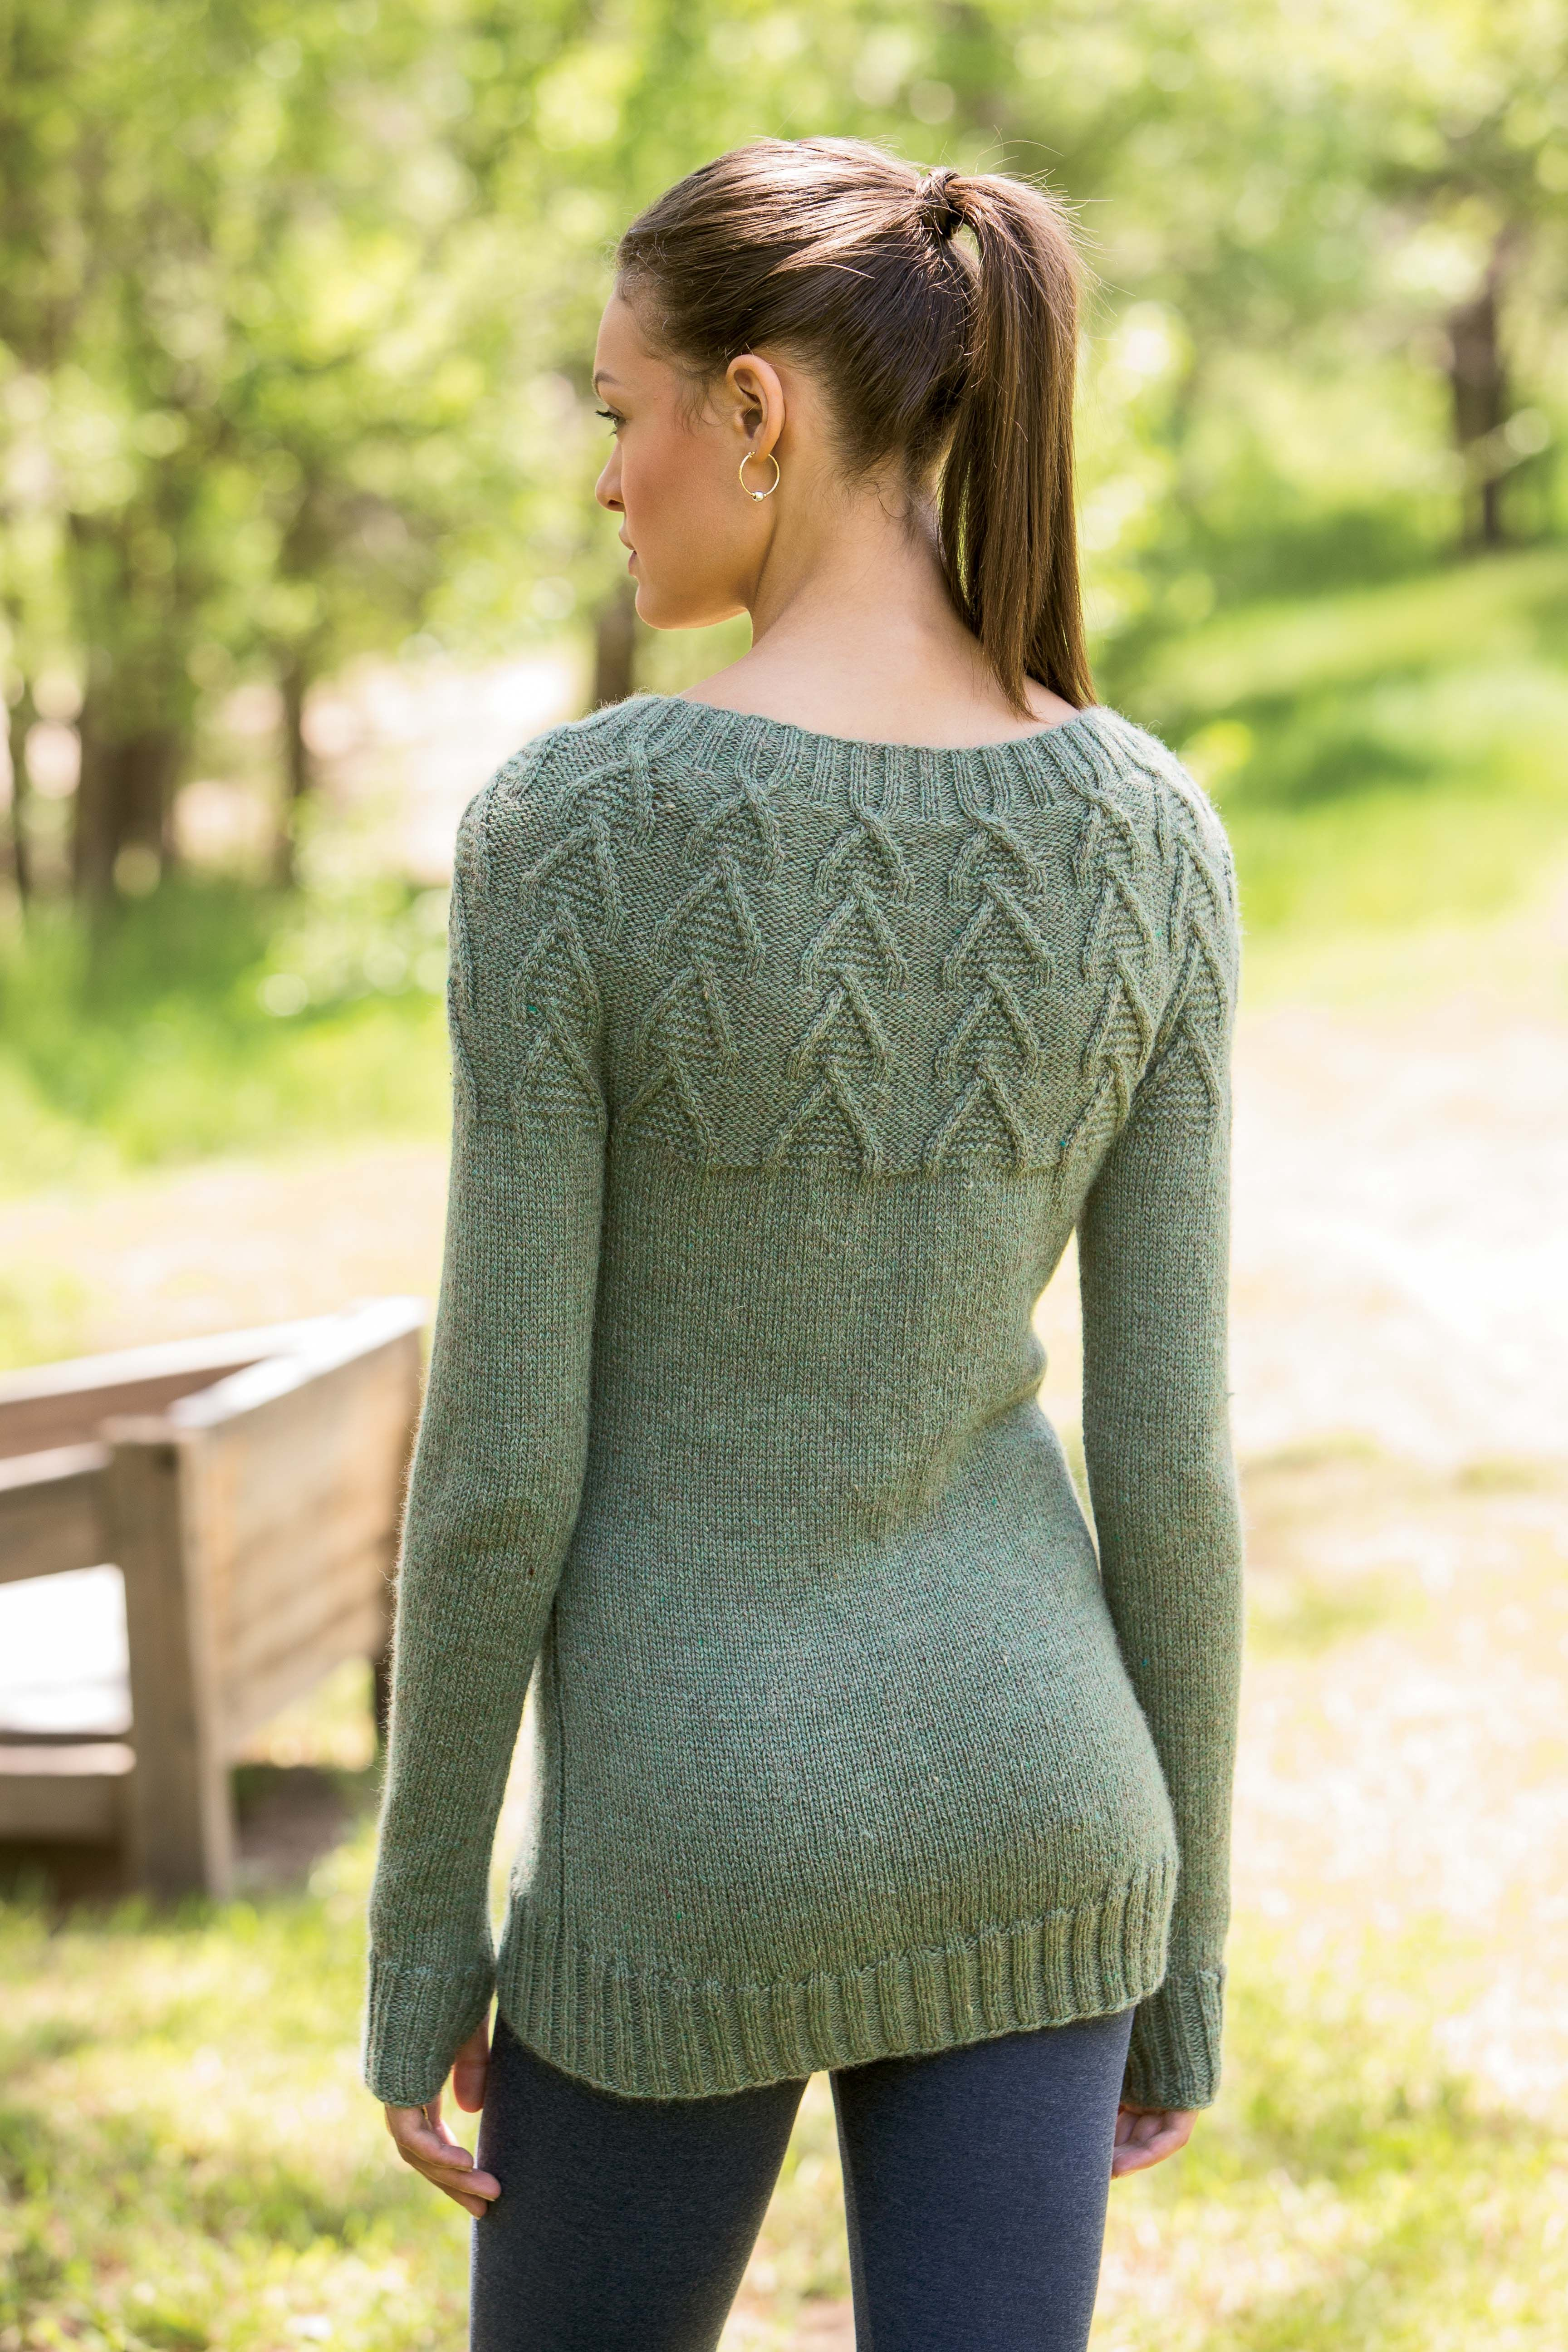 Knitted Yarn Patterns and Knitting Tutorials (с ...